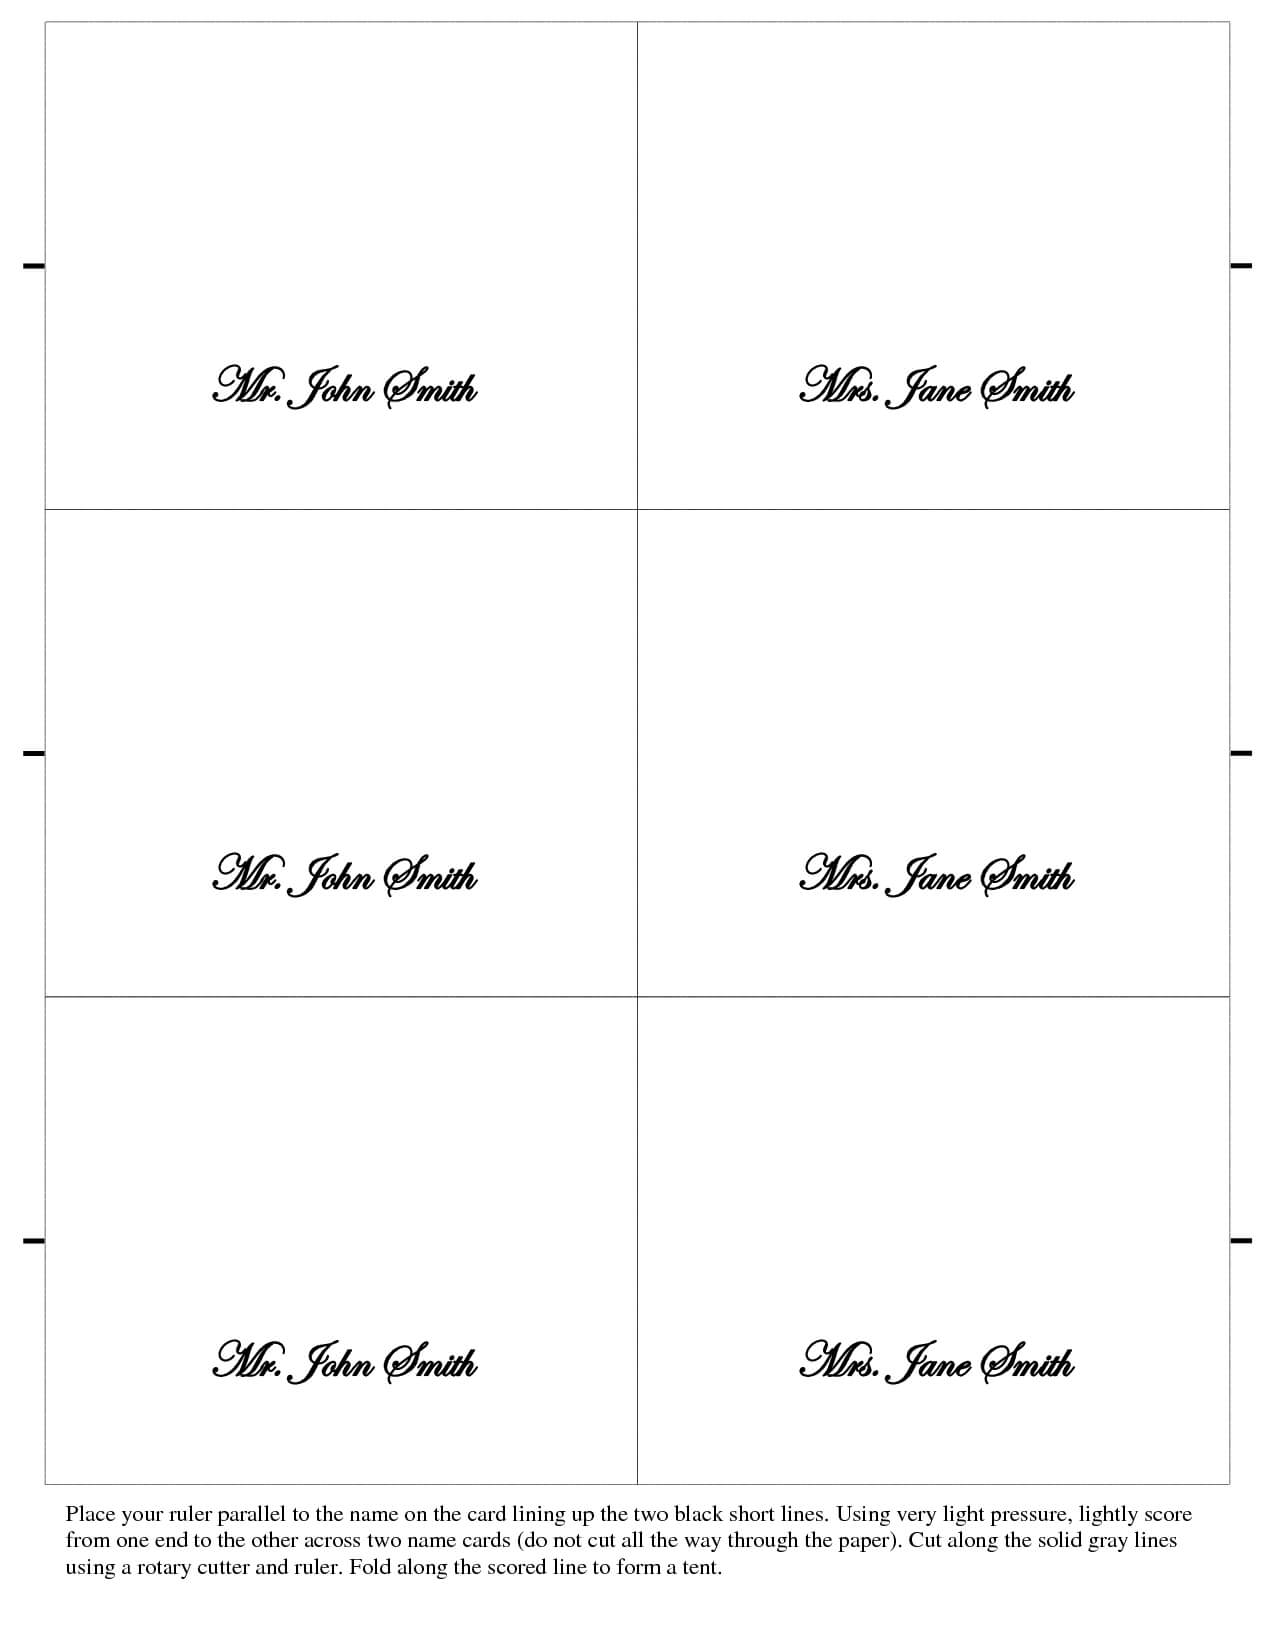 003 Free Place Card Template Ideas Table Mwd108673 Vert In Free Place Card Templates 6 Per Page